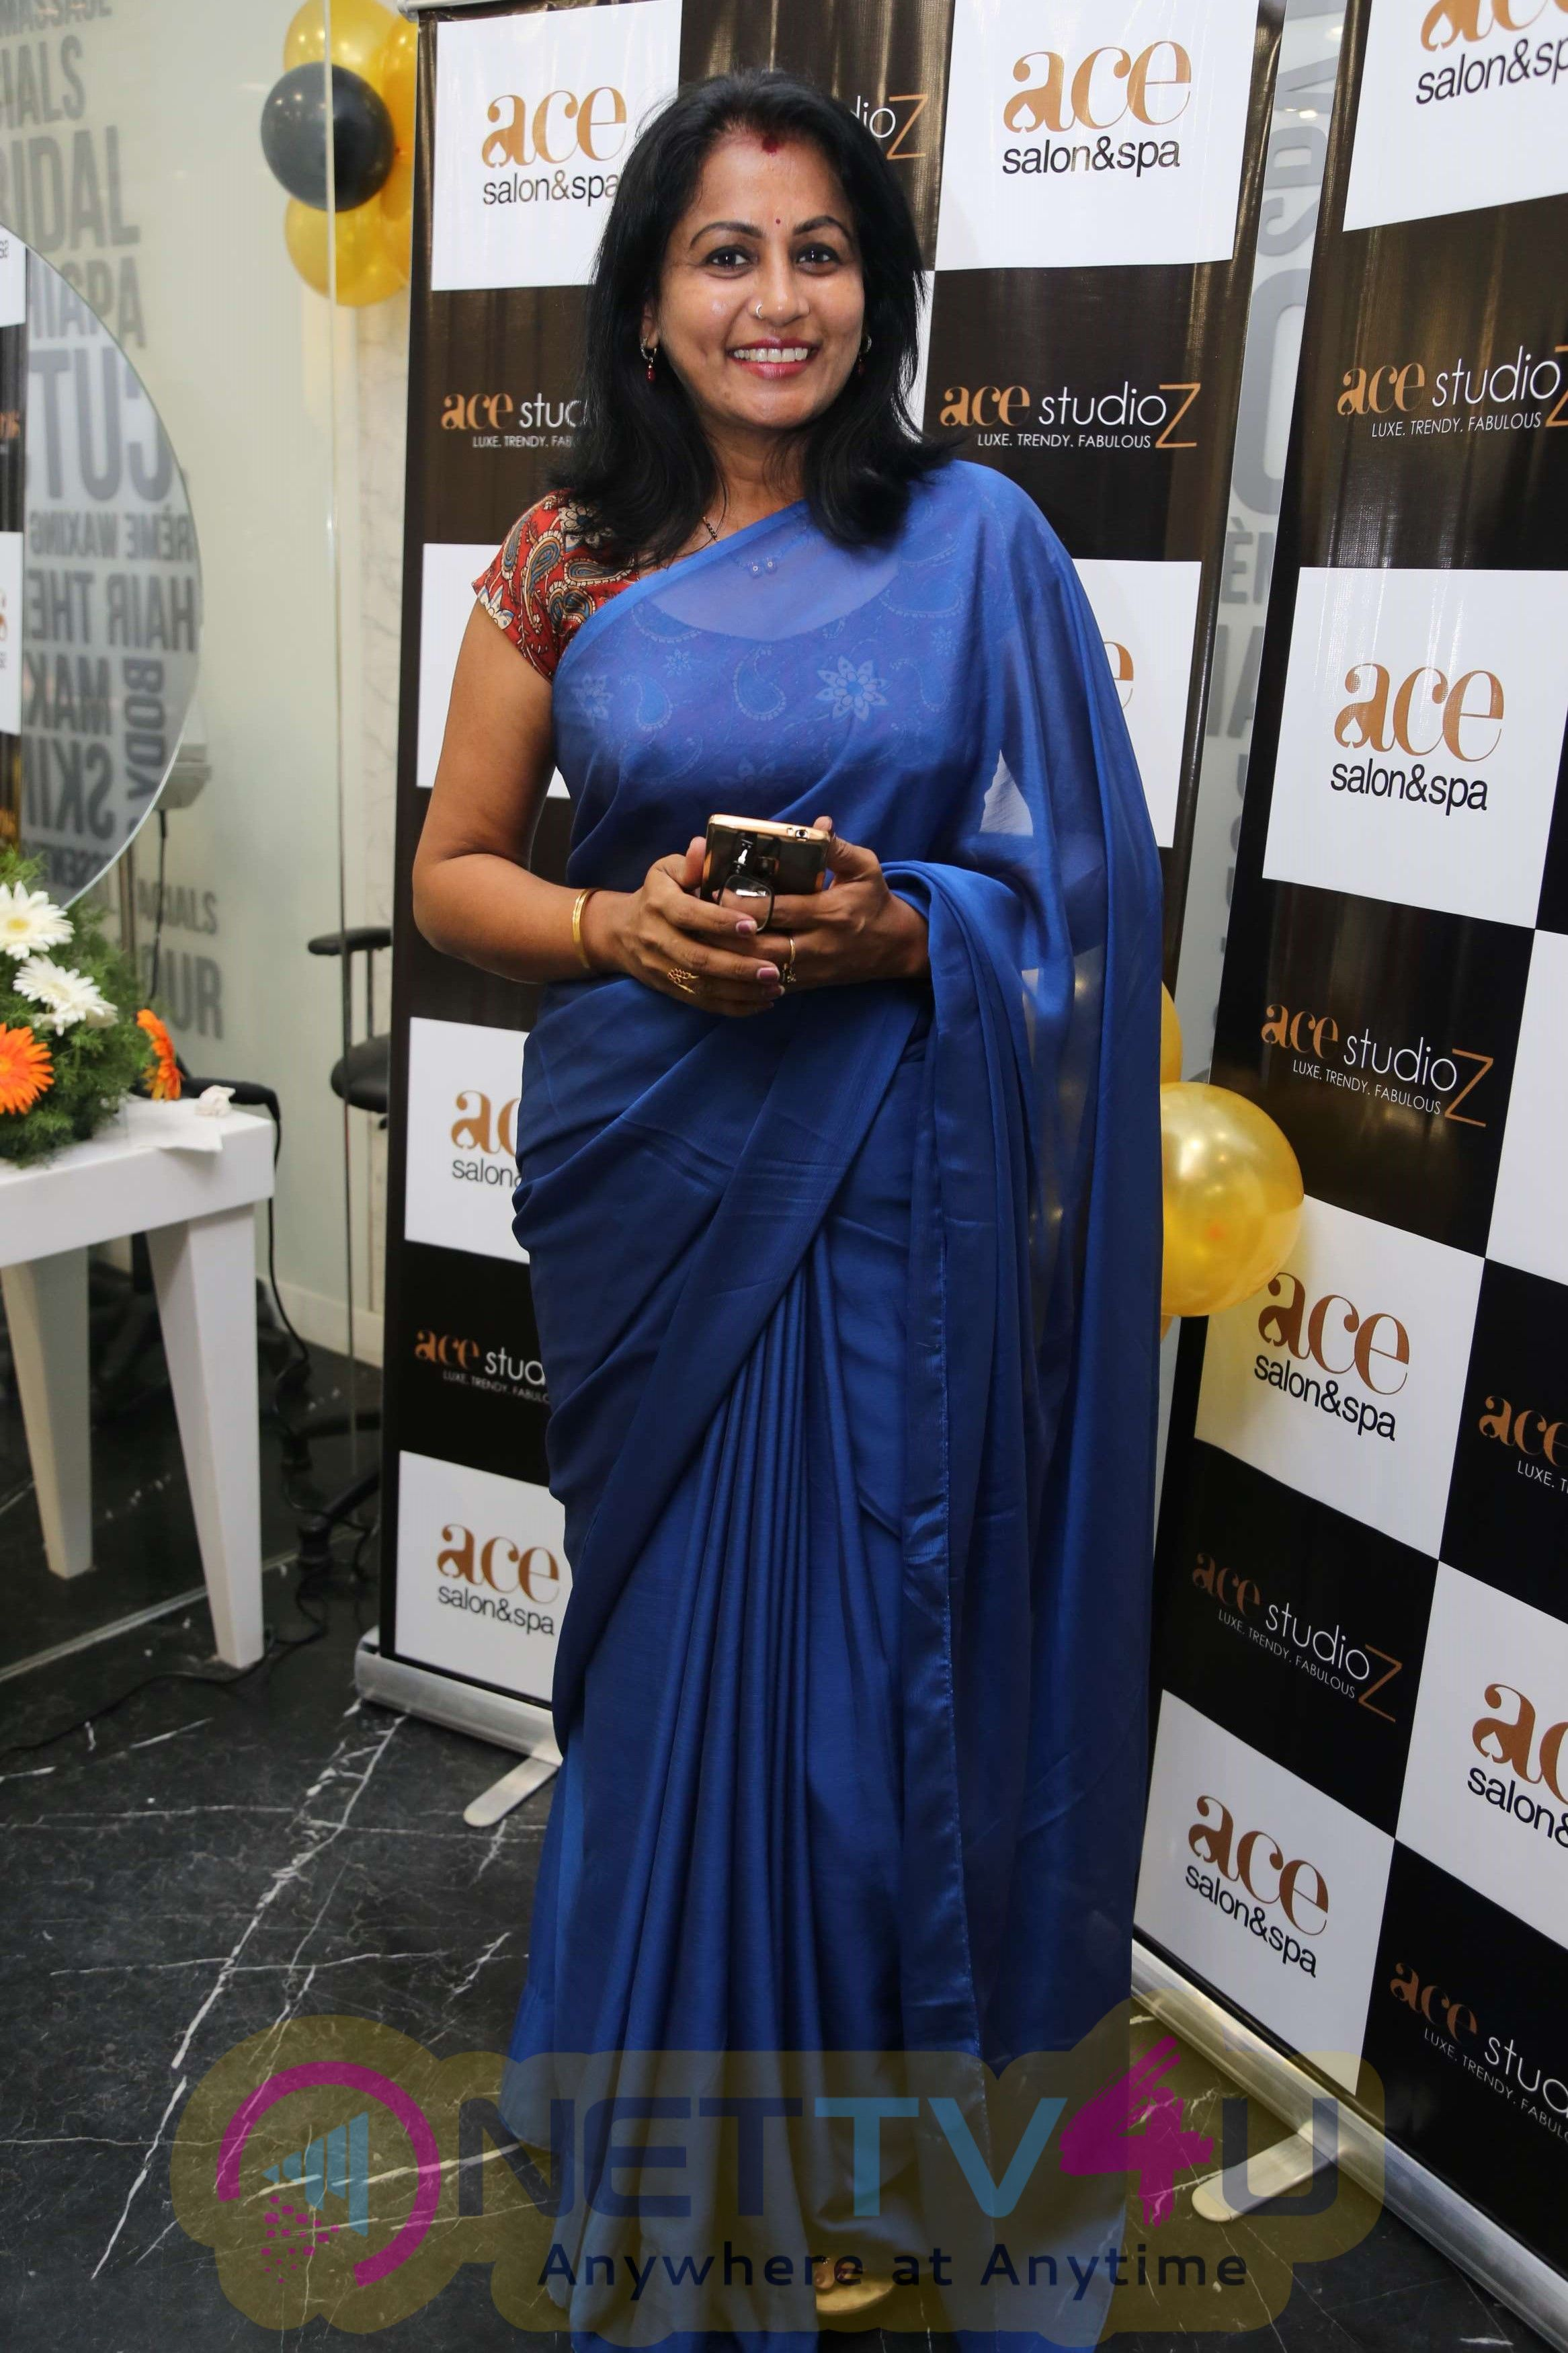 Actress Sakshi Agarwal Inaugurates Ace Studioz Salon & Spa